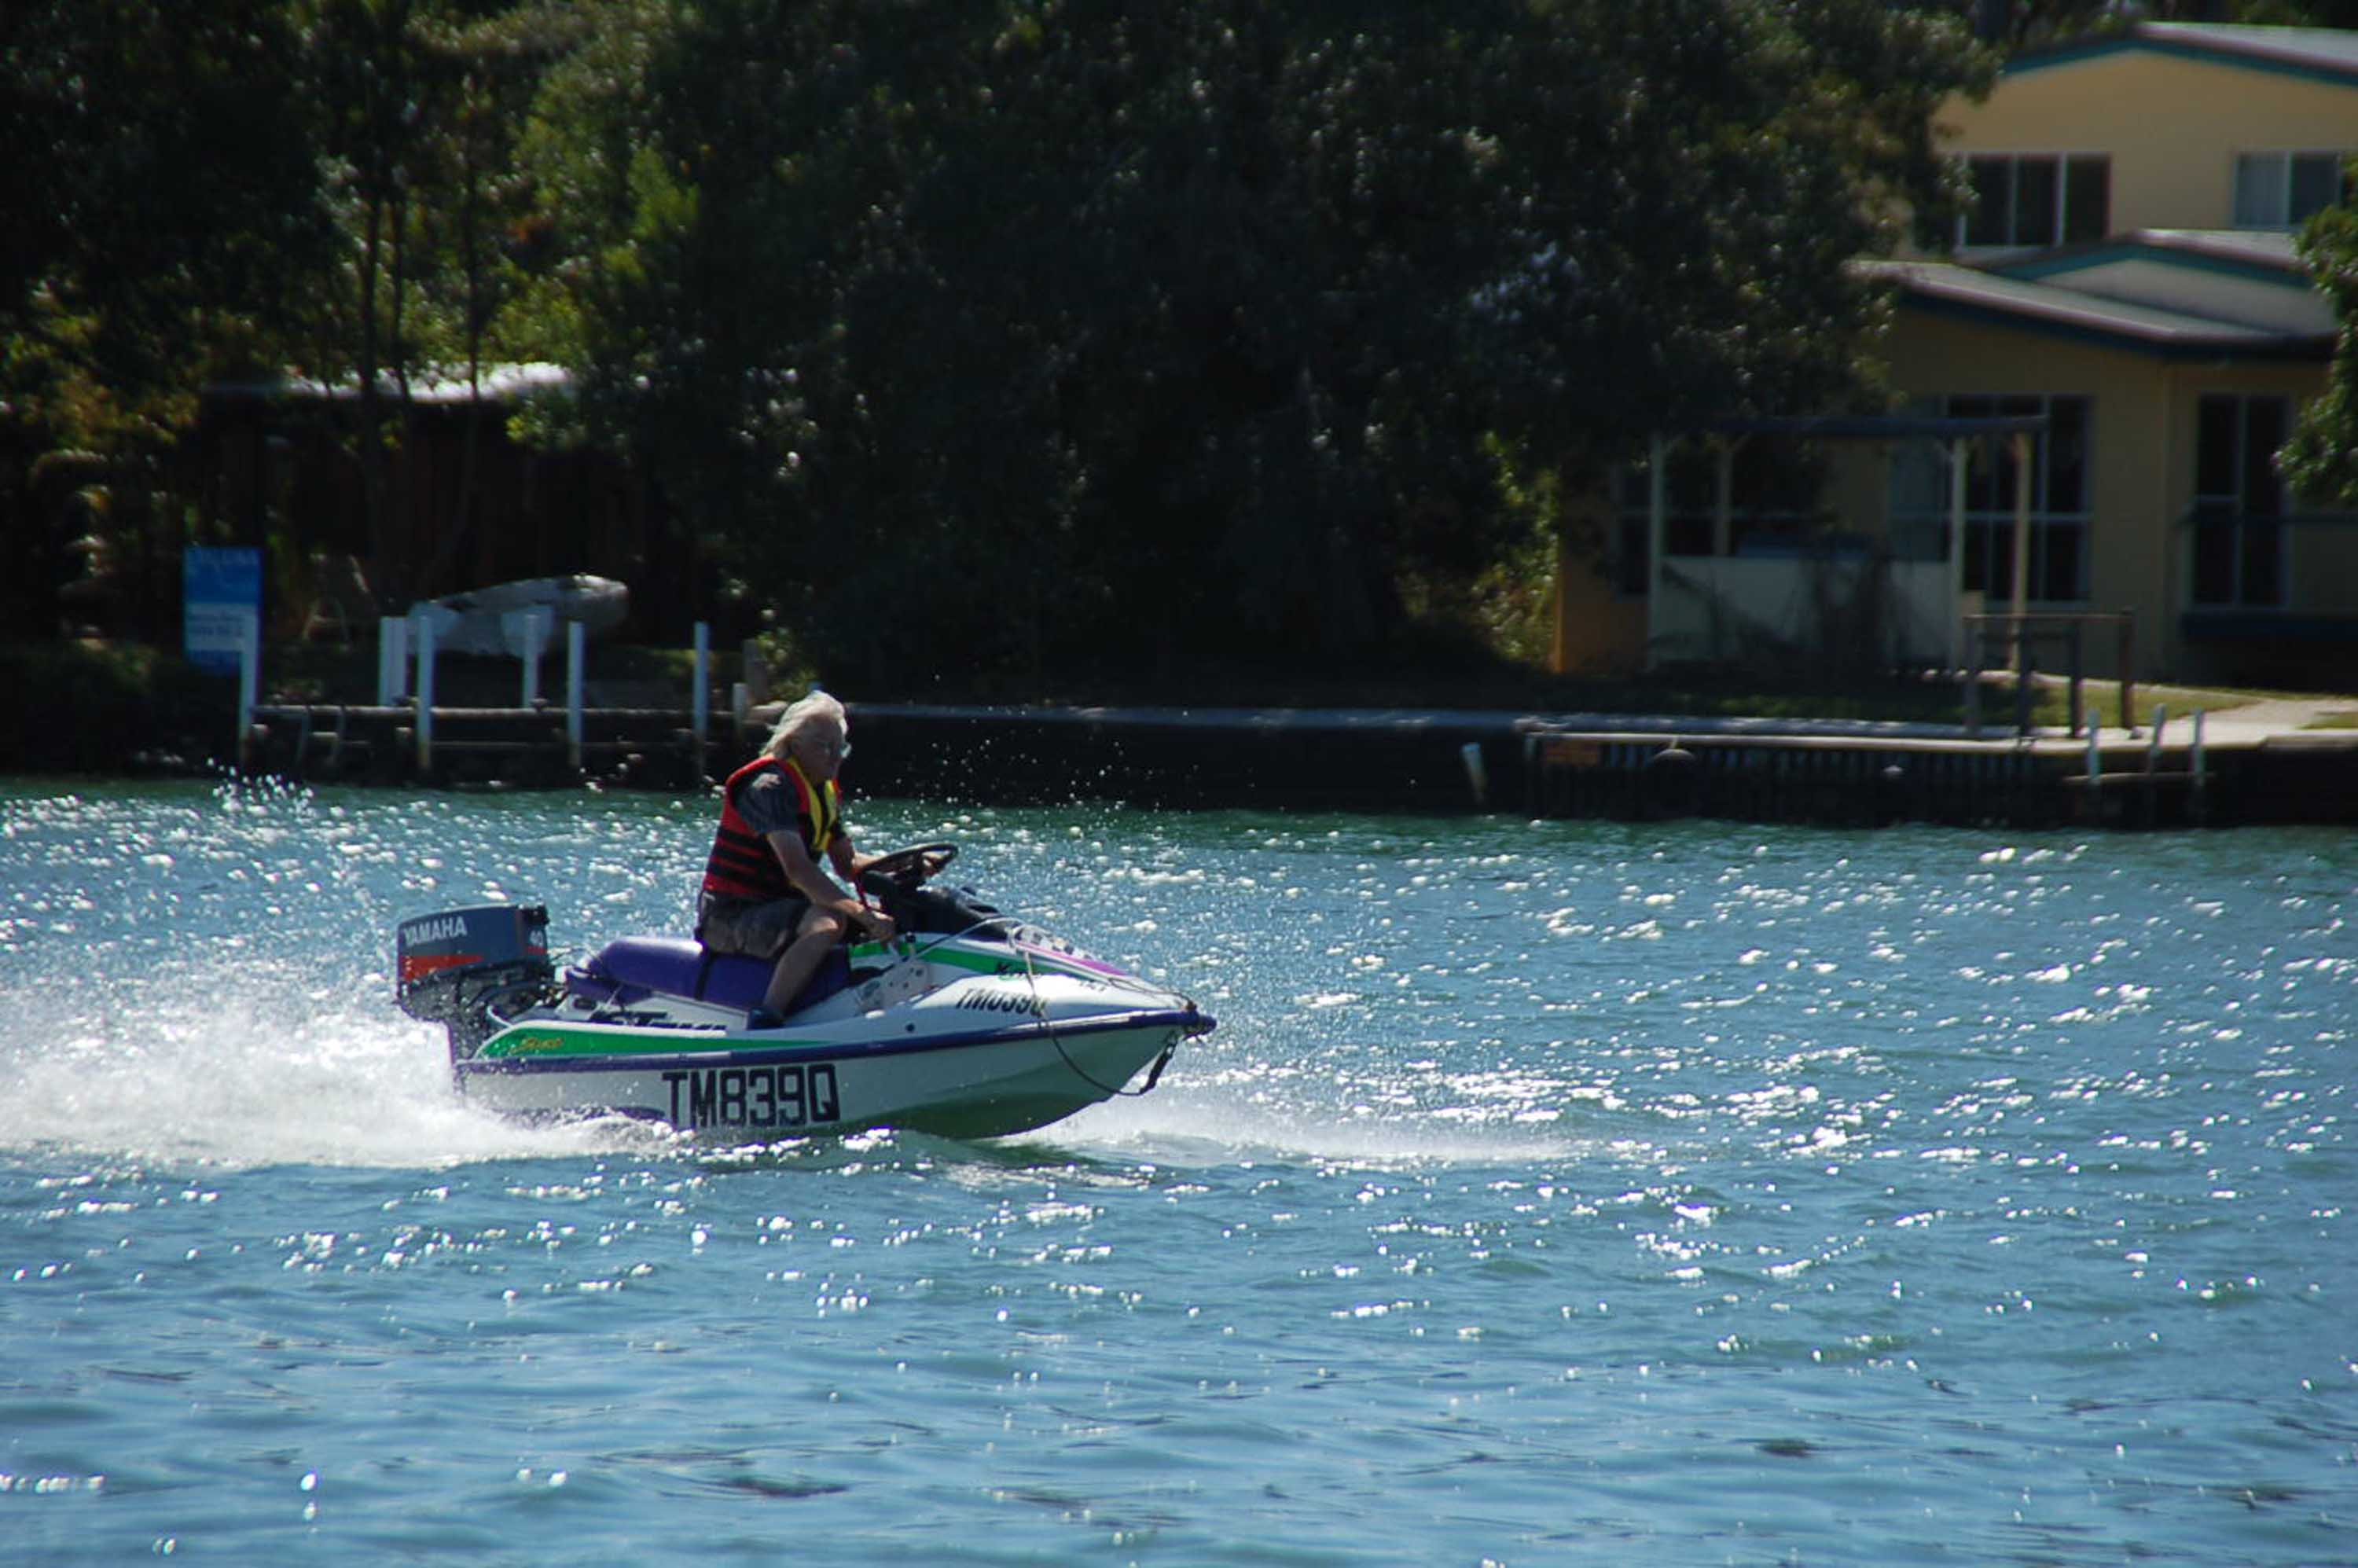 Home built jet dinghy s from new zealand boat design forums - Wtf 016 Jpg